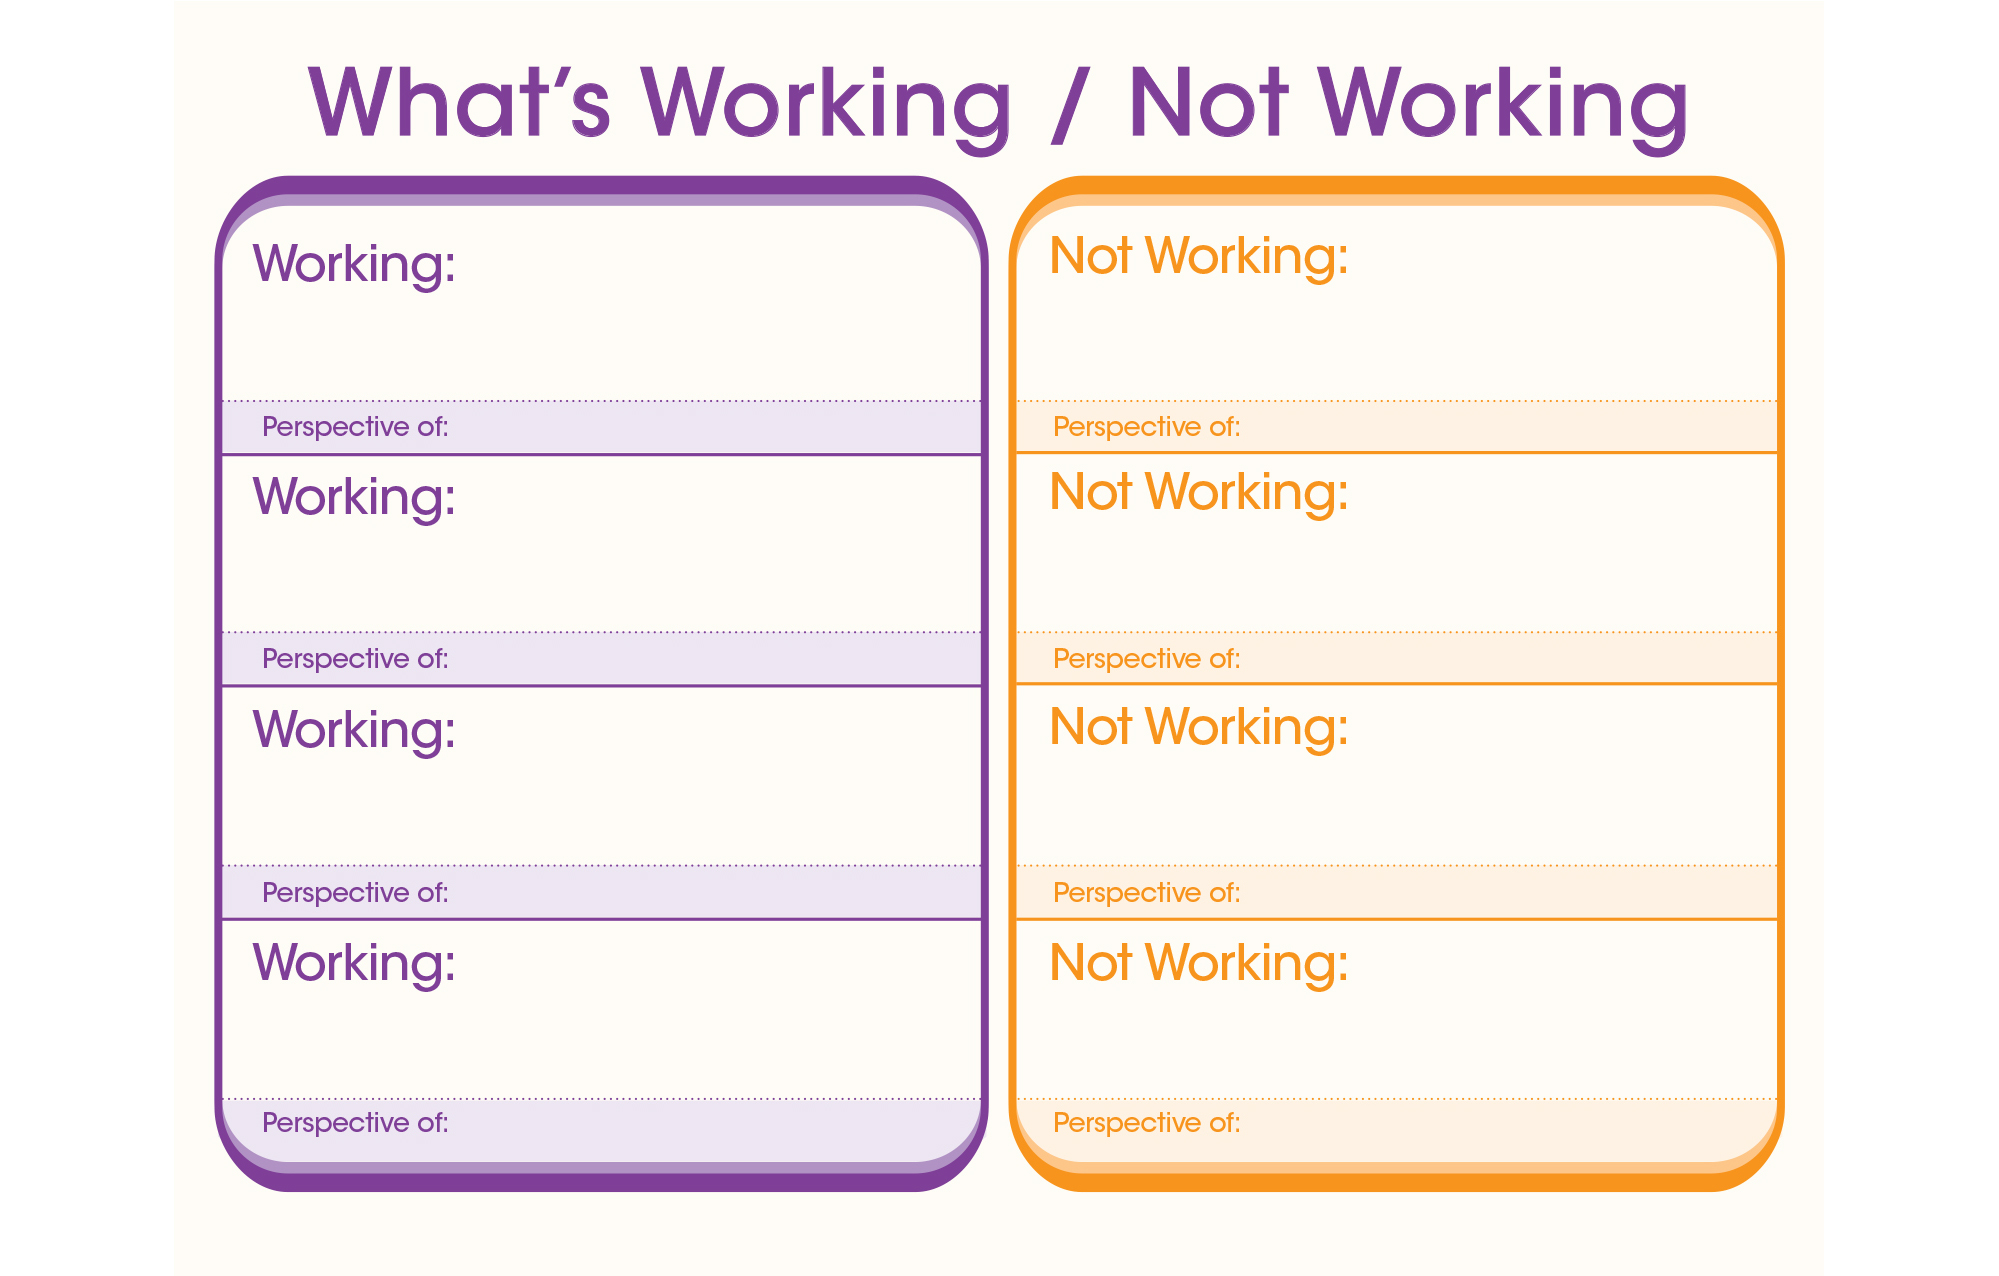 What's Working/Not Working